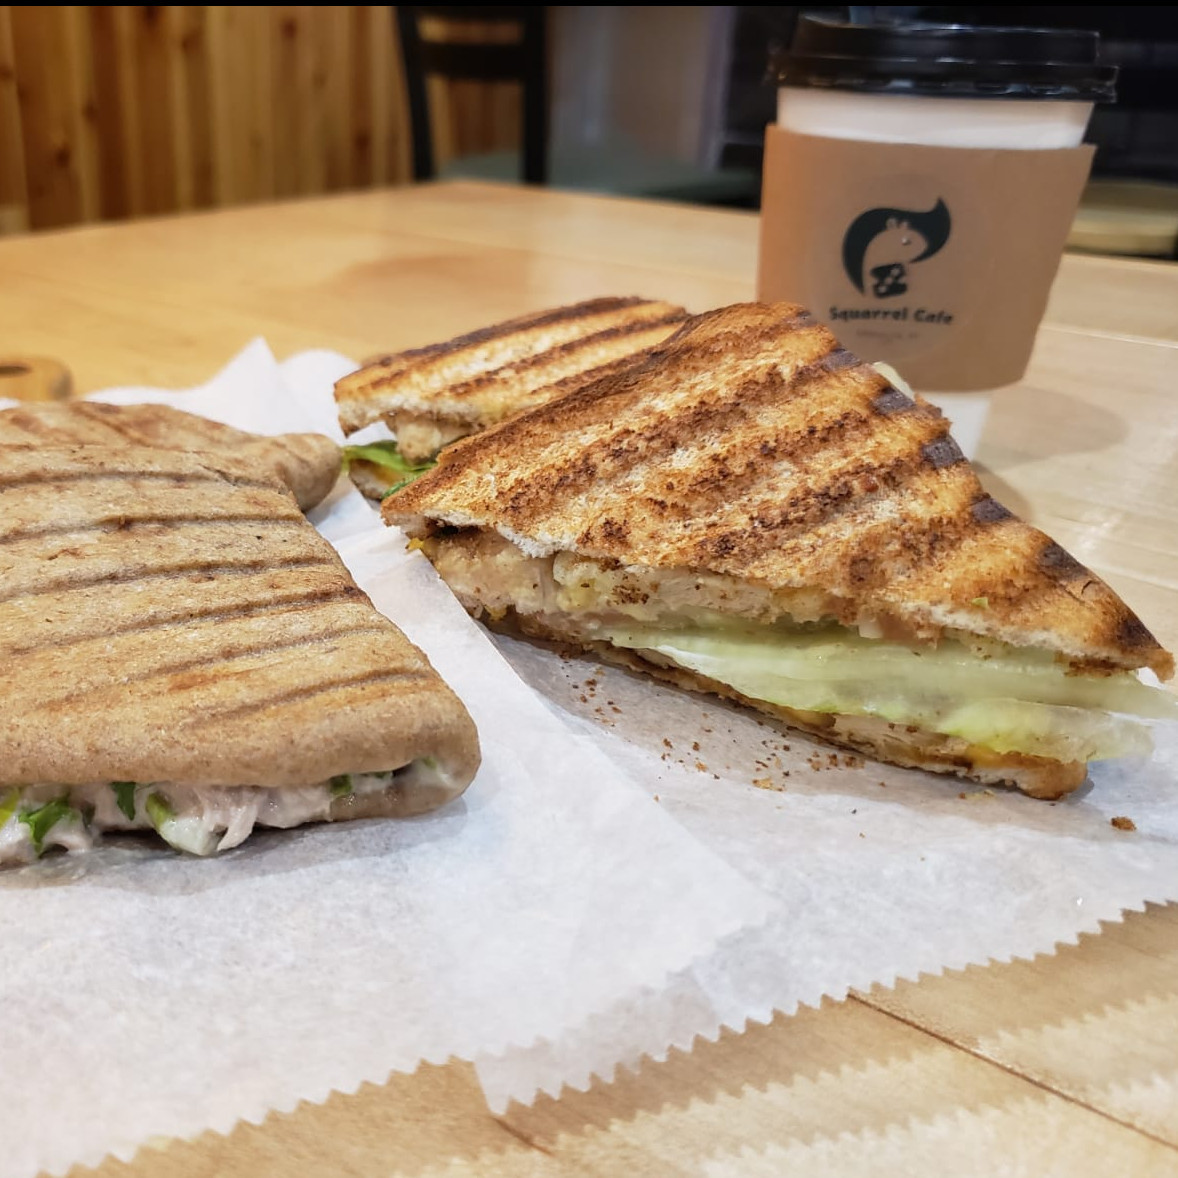 Free Small Coffee with Purchase a Sandwich